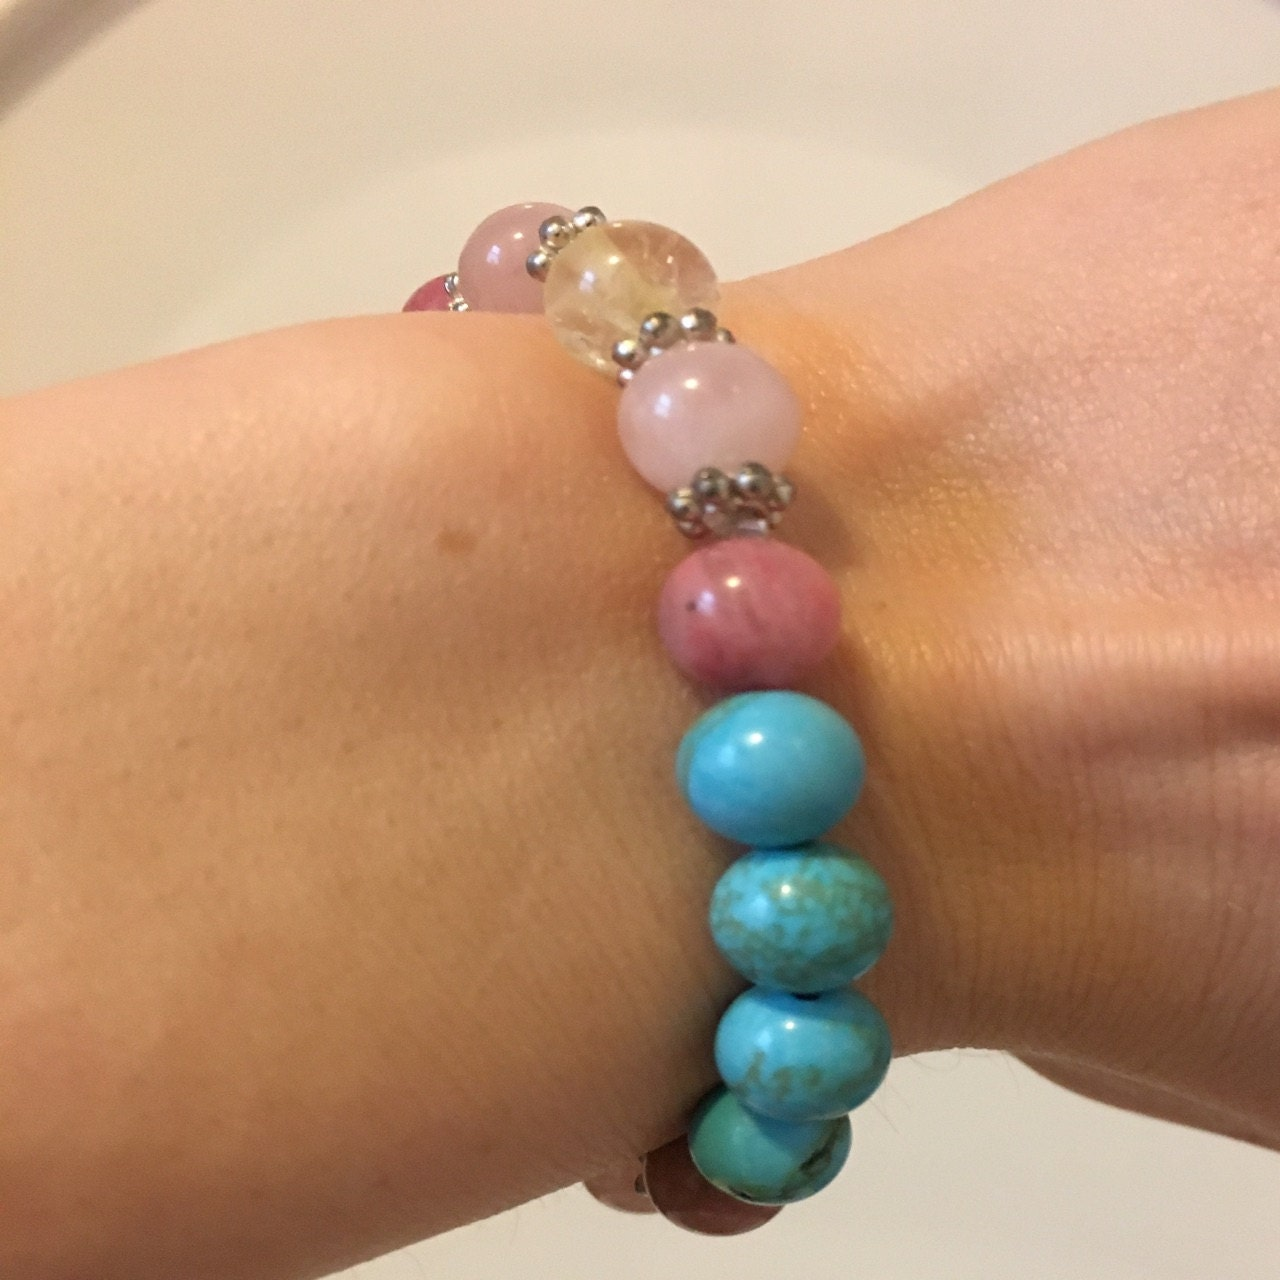 Linsley Marie added a photo of their purchase